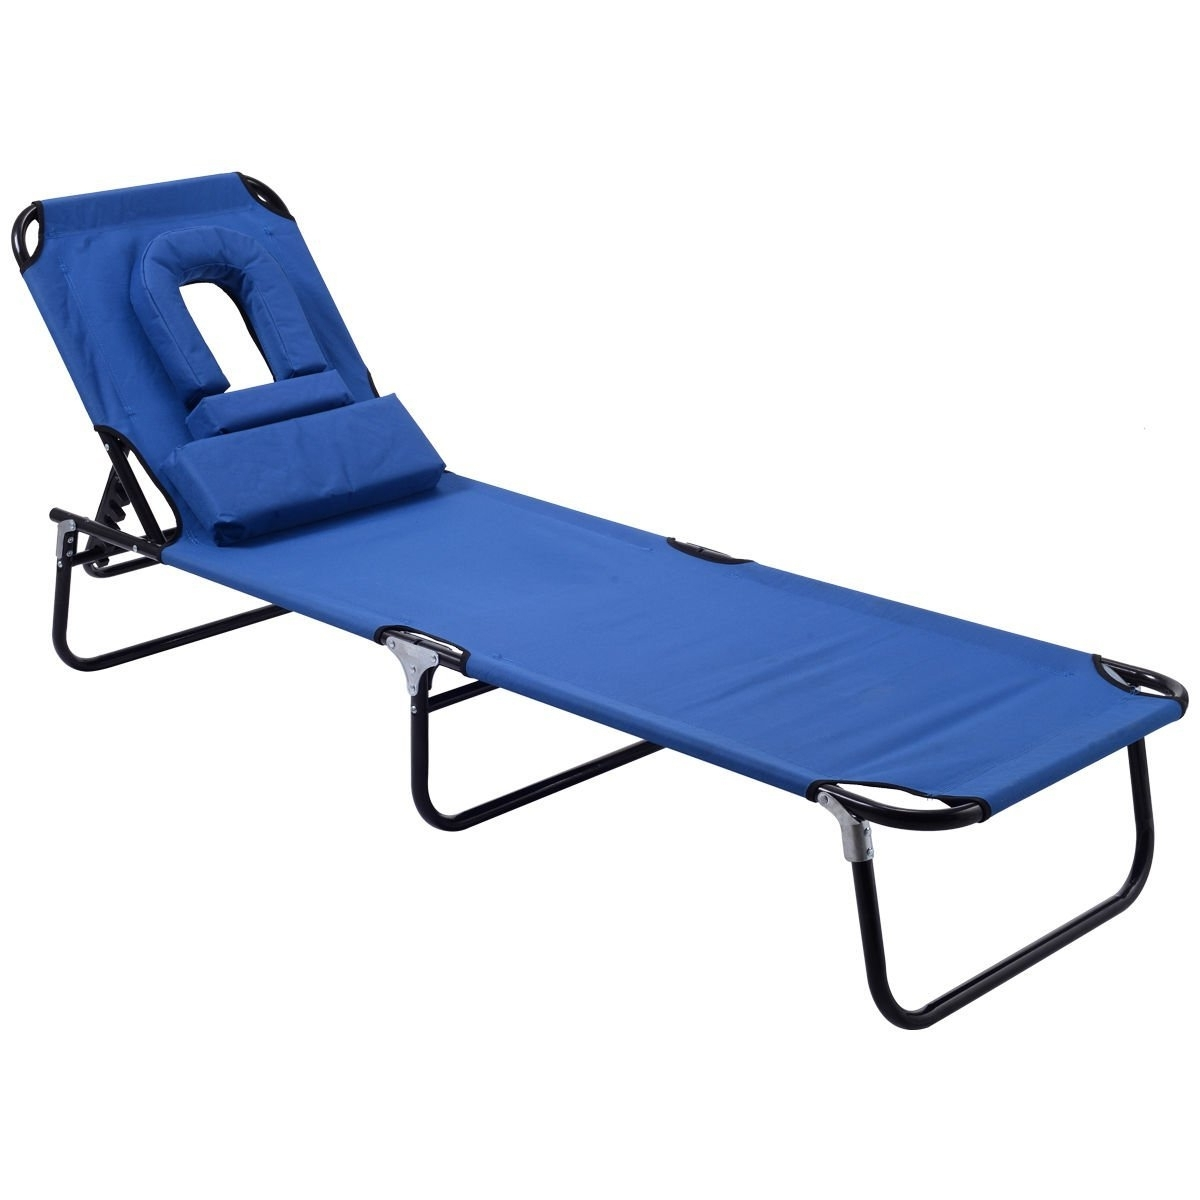 Outdoor : Lowes Outdoor Double Chaise Lounge Costco Patio Throughout Recent Folding Chaise Lounge Outdoor Chairs (View 9 of 15)